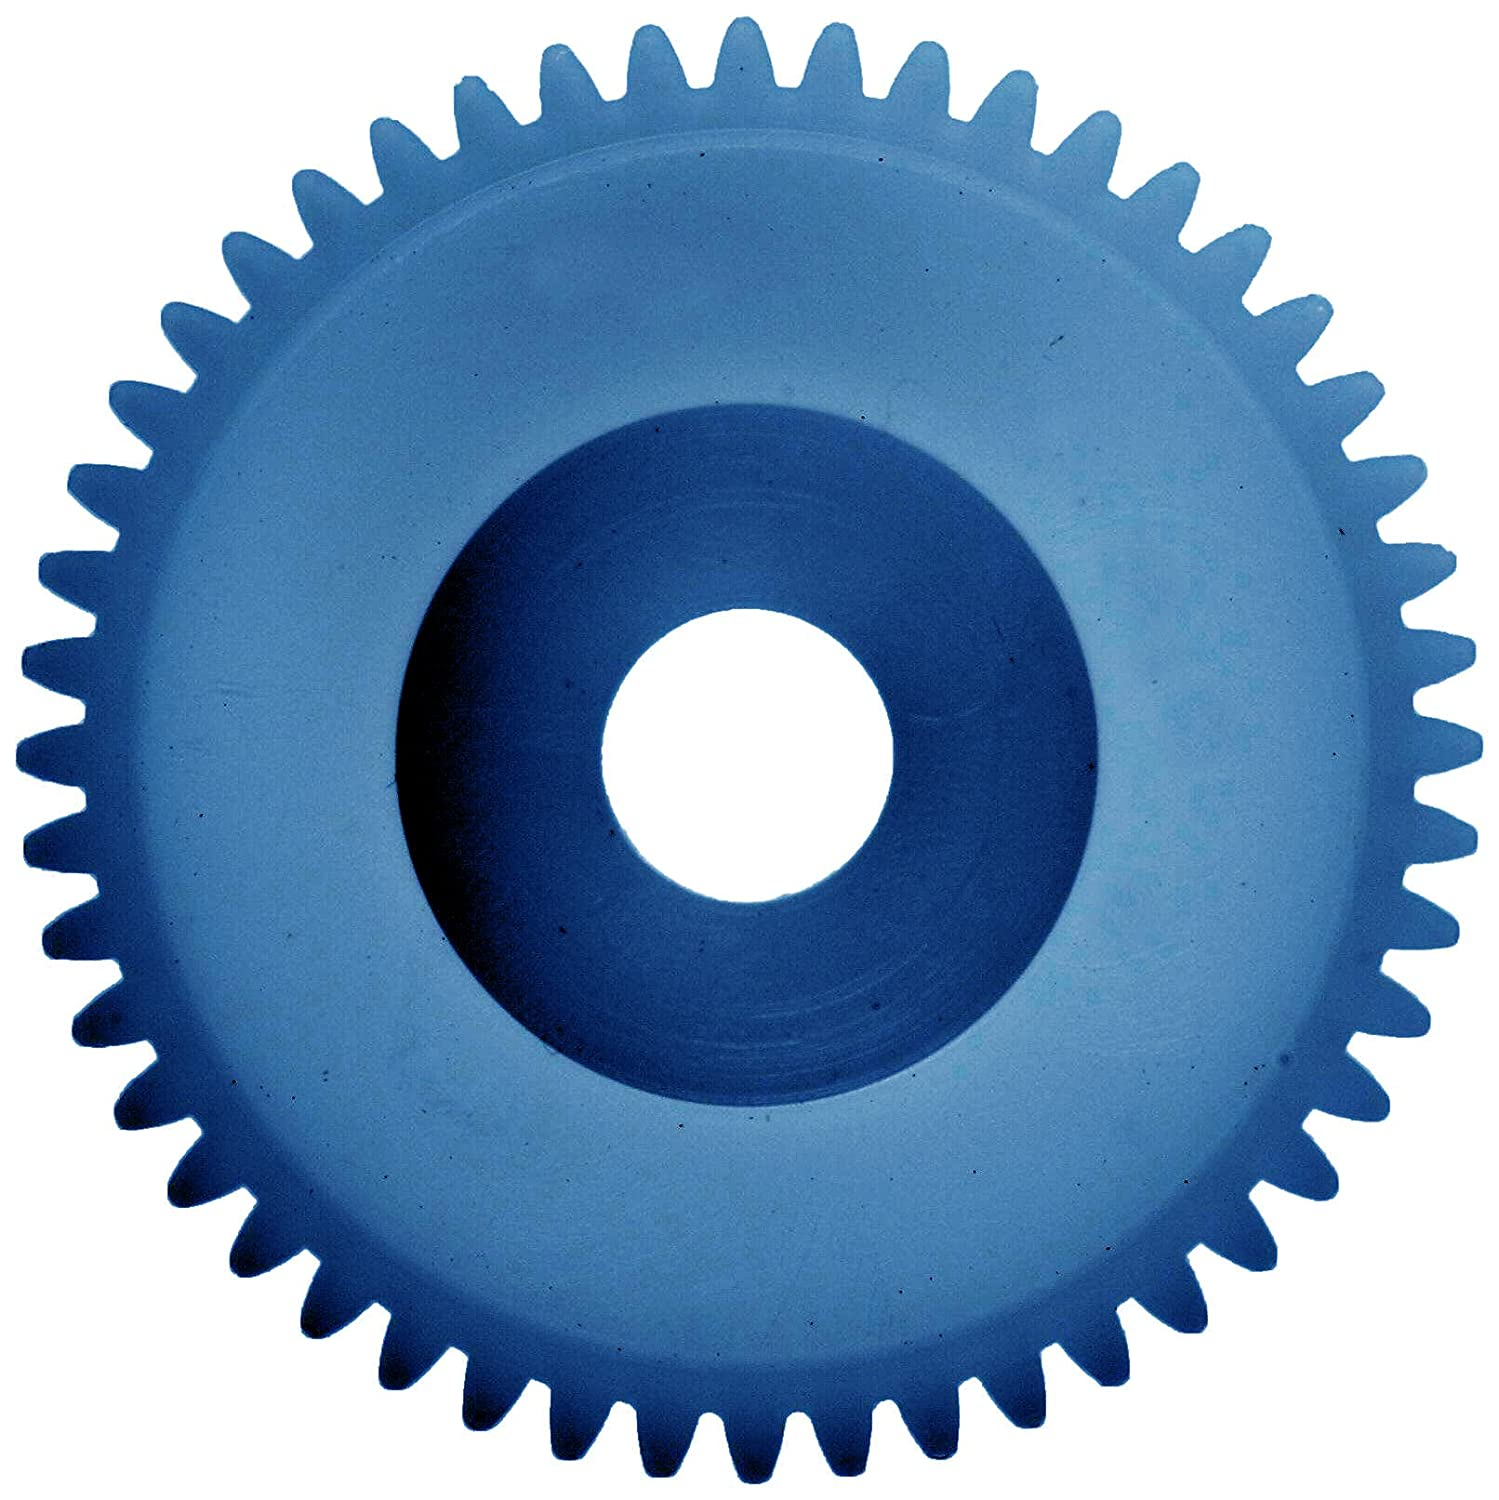 9 mm Hub Diameter 16.1 mm Outside Diameter 0.7 Metric Module Tooth Profile 6 mm Tooth Face Width, 4 +//-1mm Pilot Bore AM0.7B21 Ametric/® Metric Injection Molded Acetal Resin Spur Gear with Hub 20 Degree Pressure Angle Mfg Code 1-025 21 Teeth